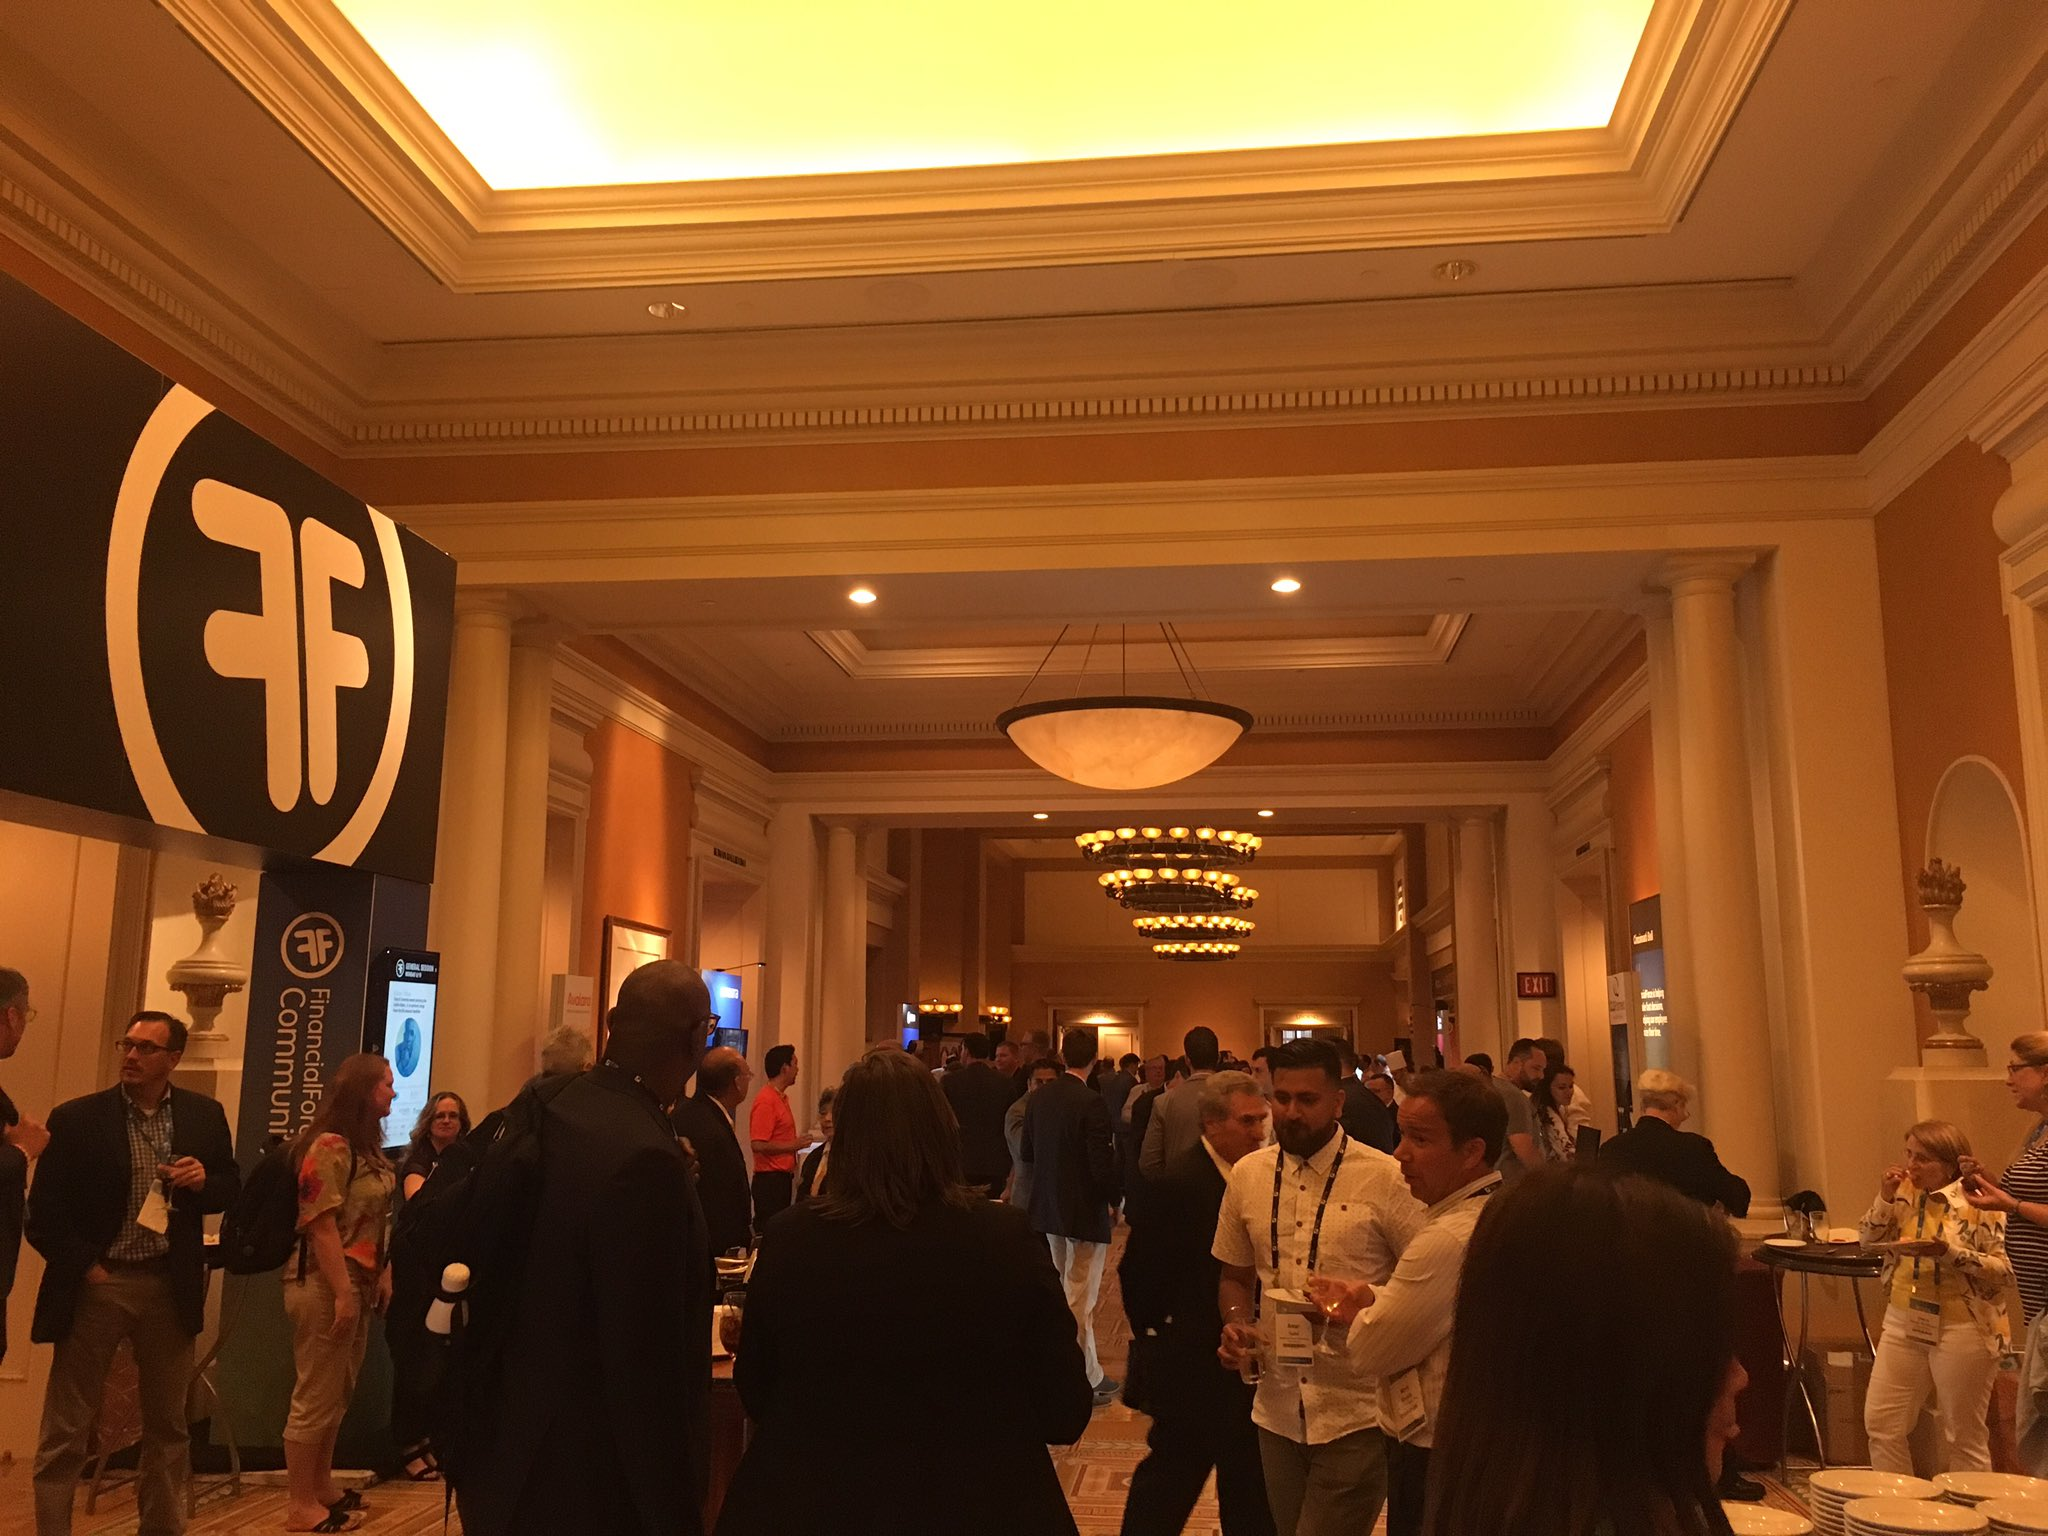 Time for some bites and networking at the Welcome Reception! #FFComm17 https://t.co/K7SinQ0HbF